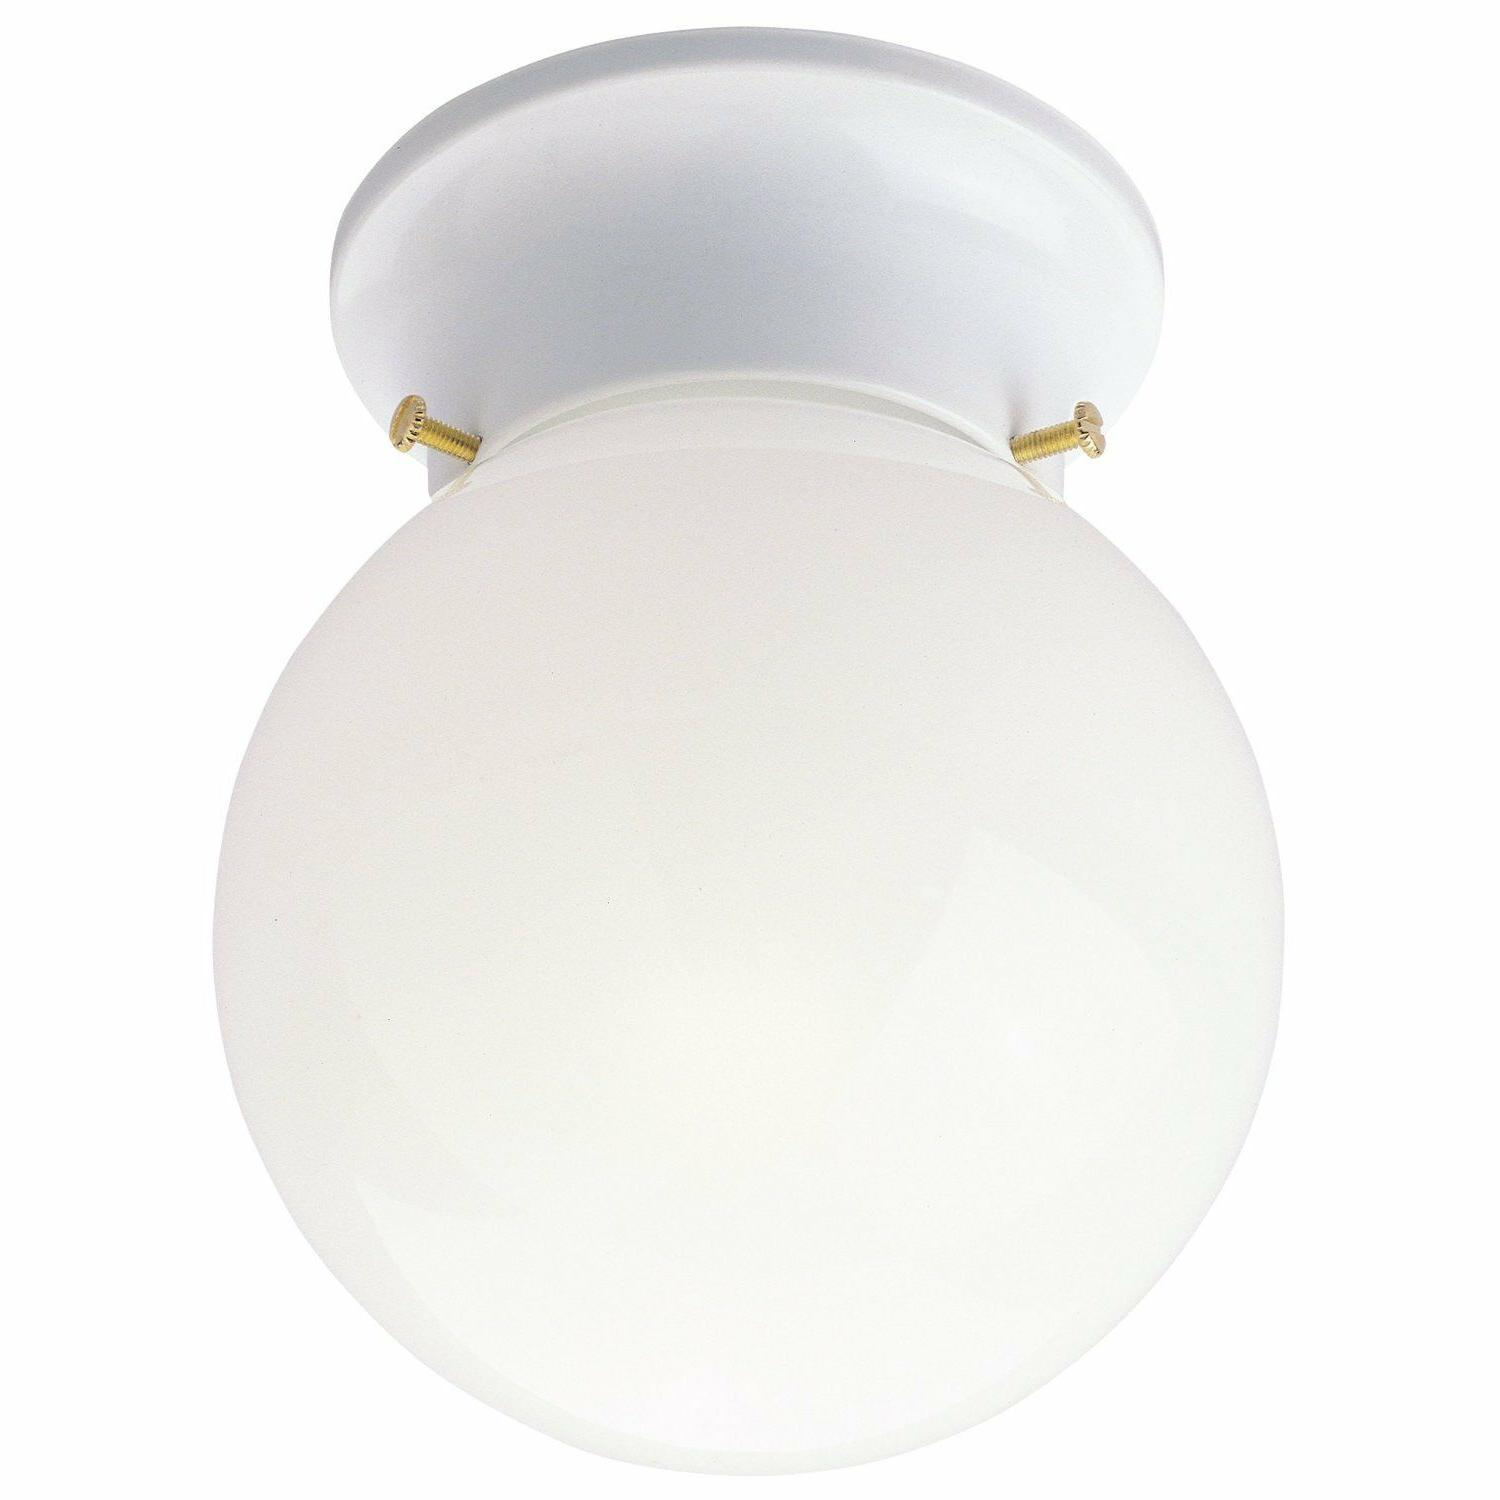 Westinghouse One-Light Flush-Mount Ceiling Fixture White Fin